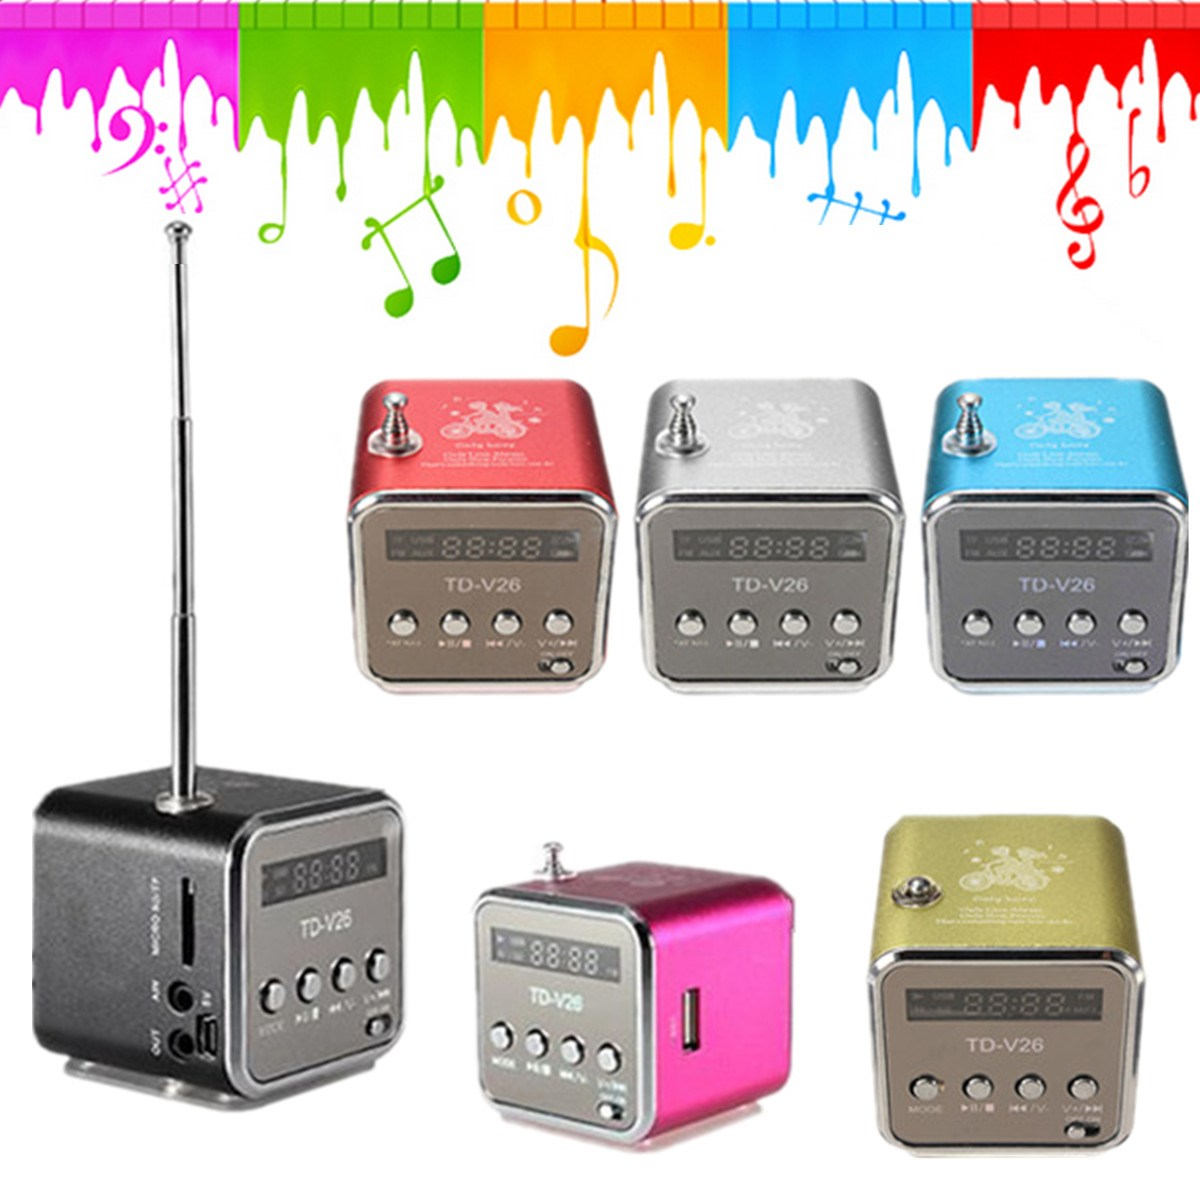 Mini Speaker Radio Wireless Portable Micro USB Stereo Speakers Ubwoofer Column Super FM Radio Receiver panasonic rf p50eg9 s radio fm stereo portable radio receiver music play speaker full band